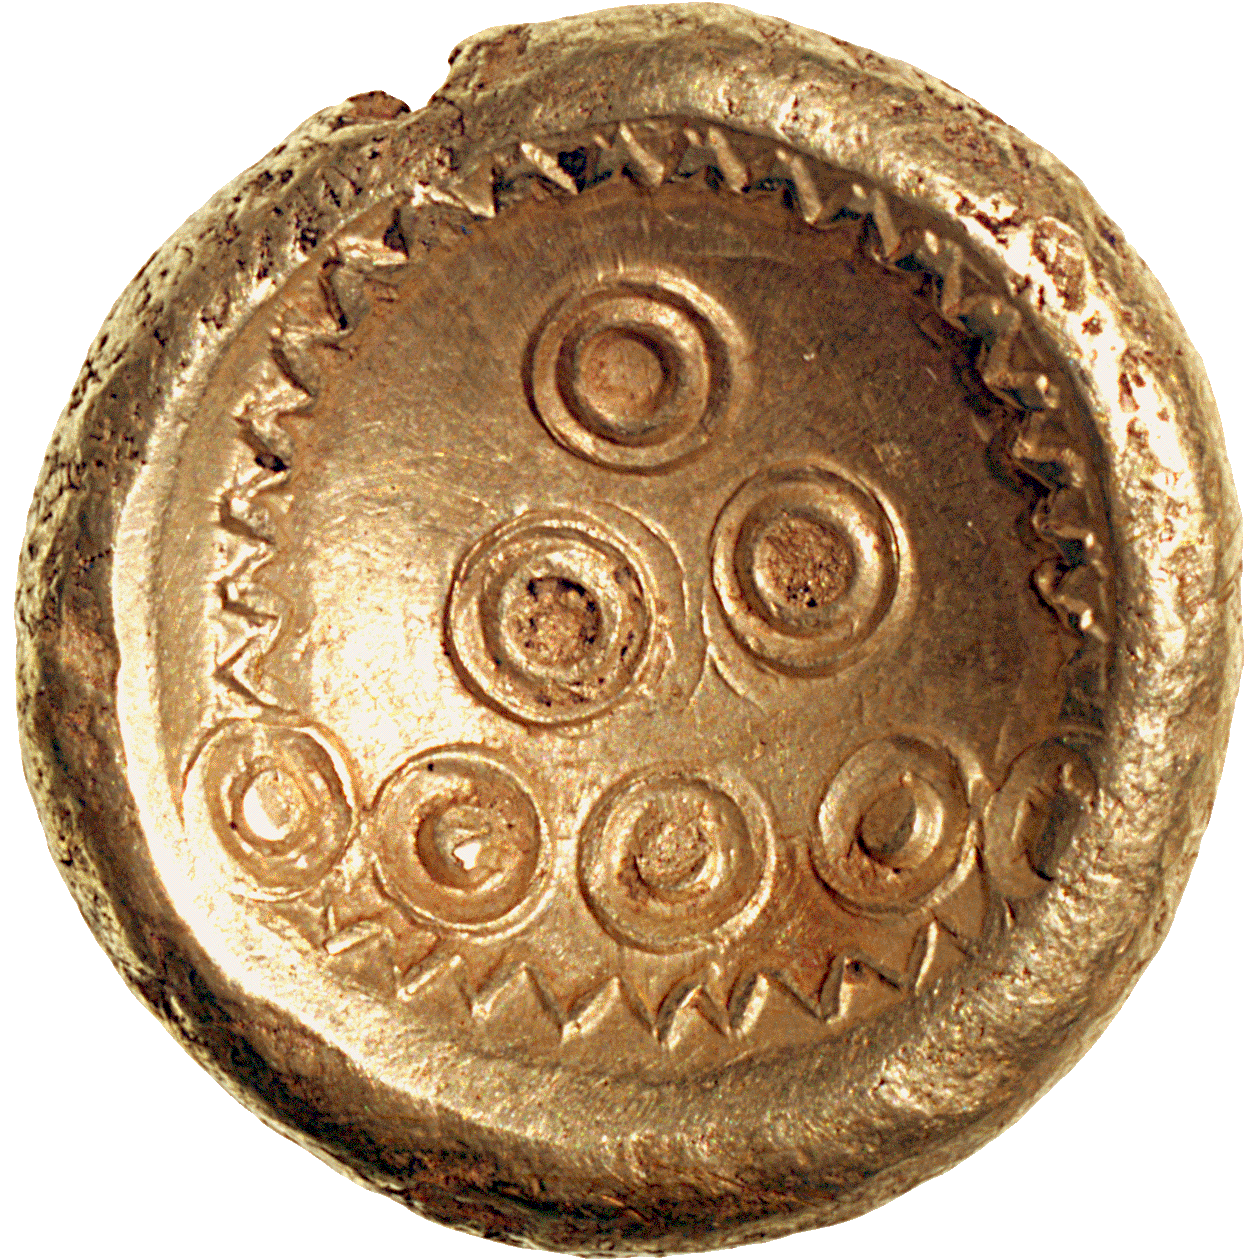 Hesse or the Rhineland, Stater (reverse)